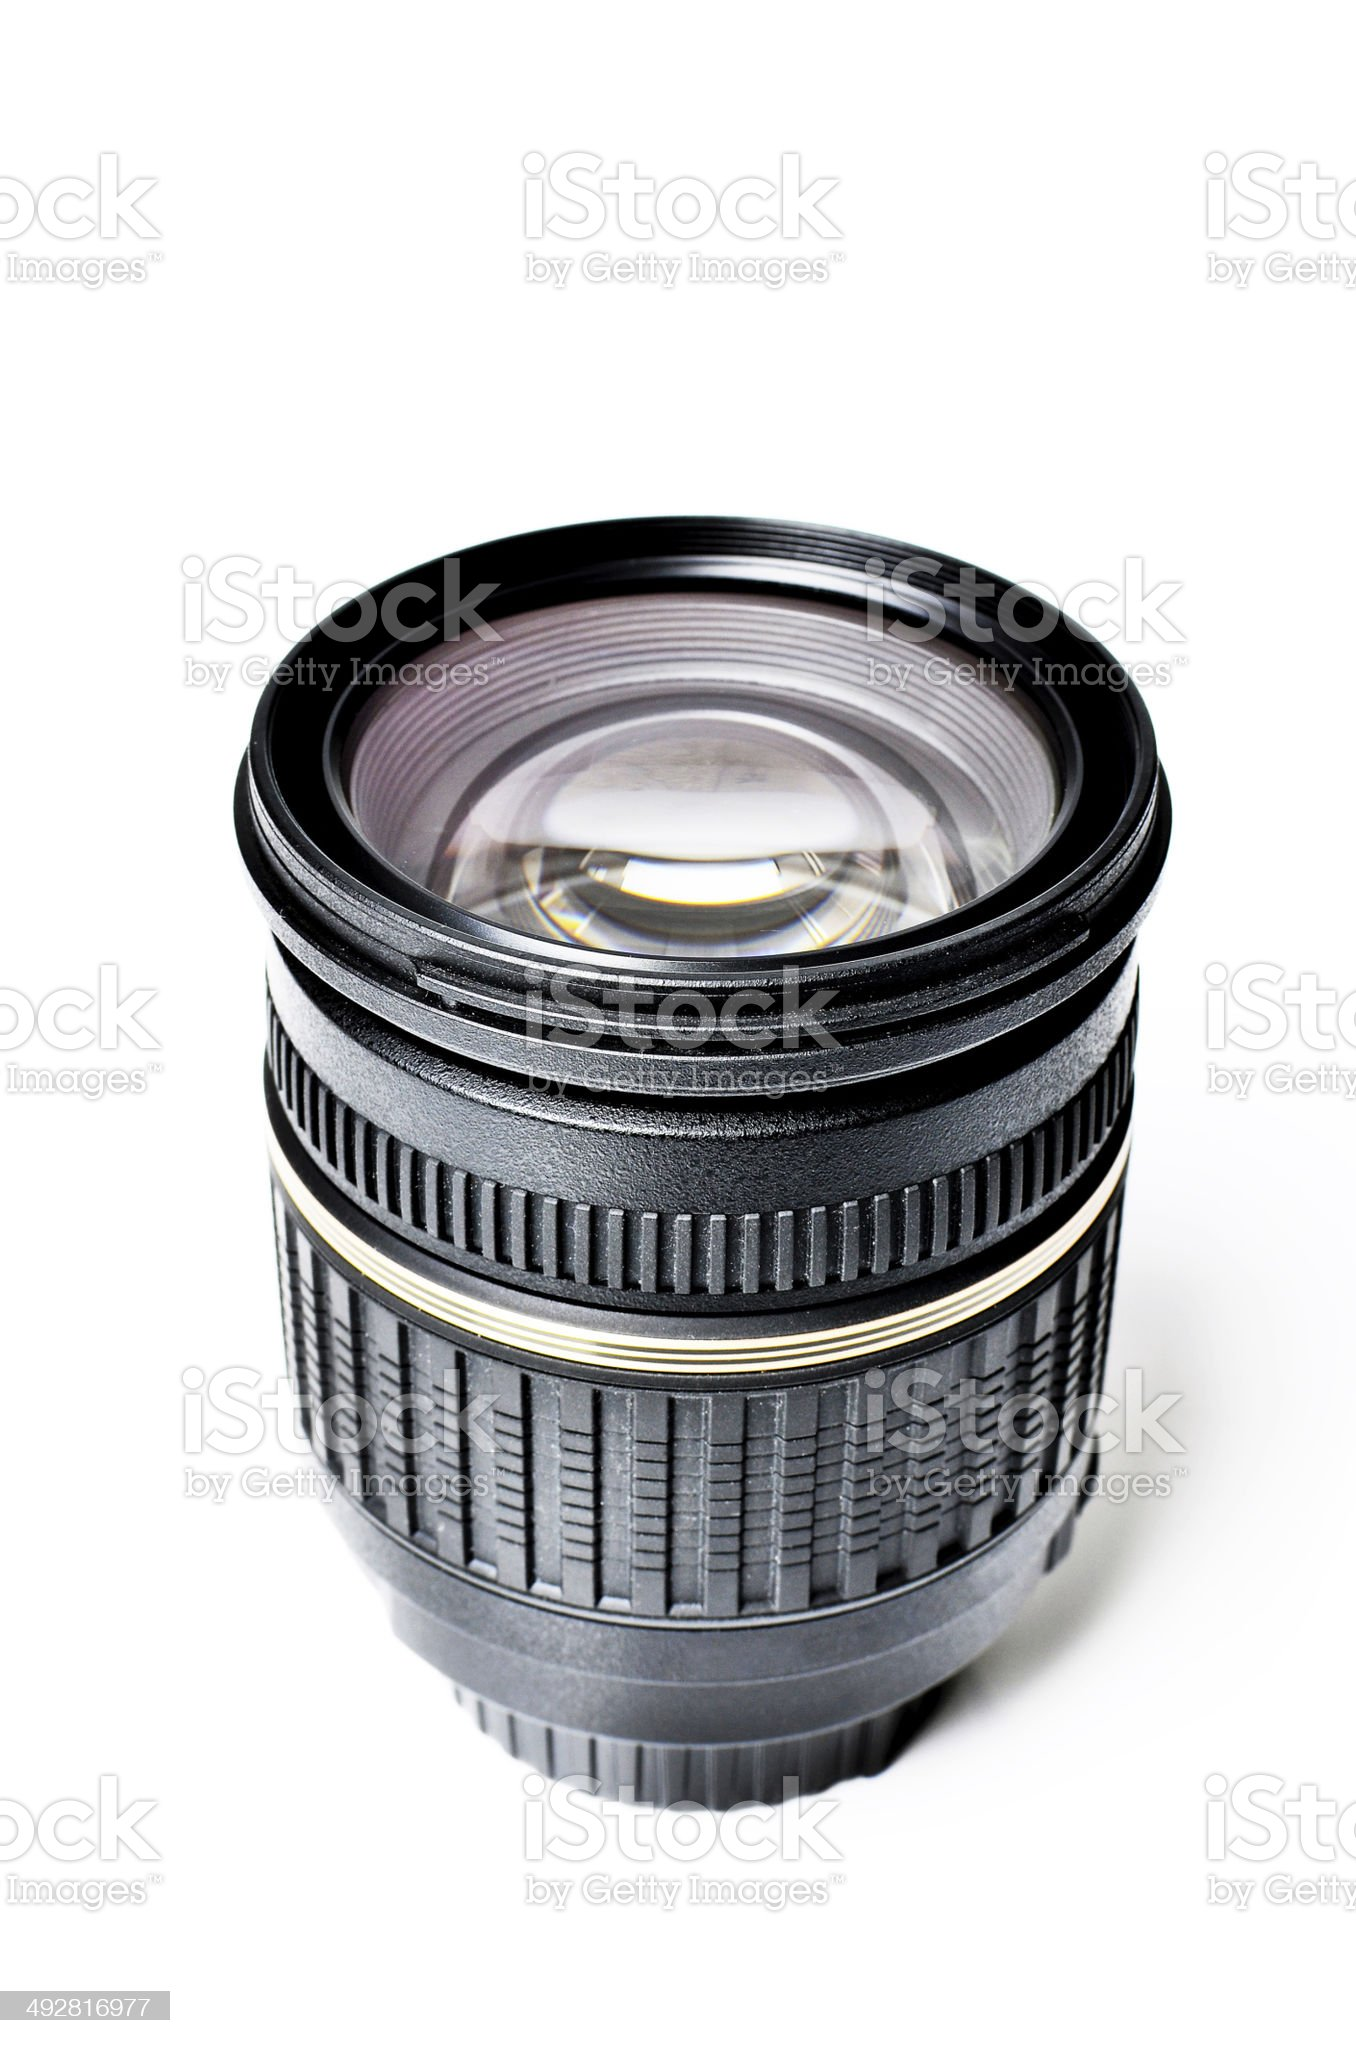 Zoom autofocus lens for DSLR camera on isolated white background royalty-free stock photo